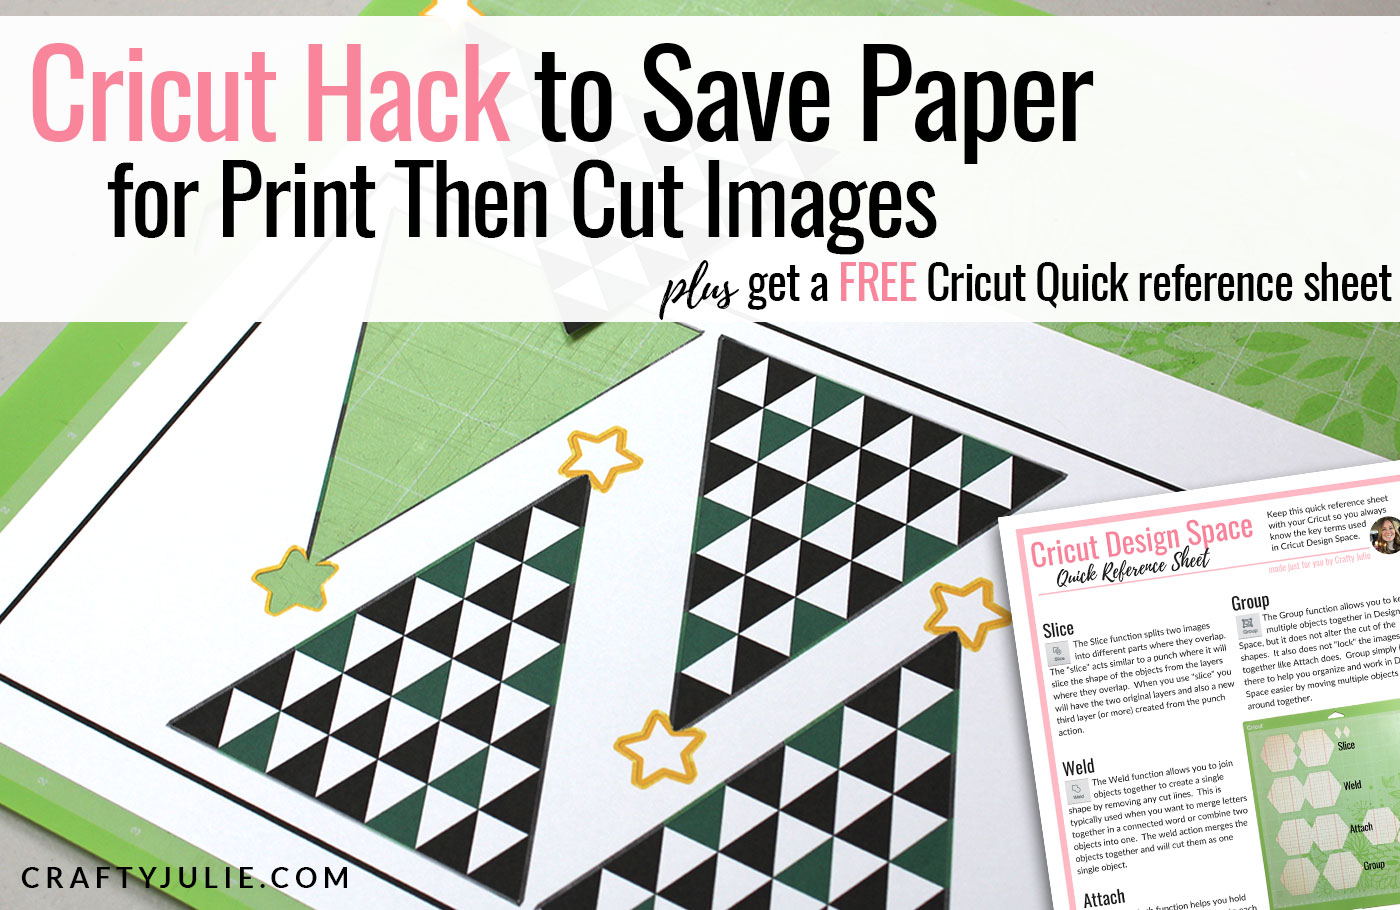 Cricut Hack to Save Paper for Print Then Cut Images · Crafty Julie